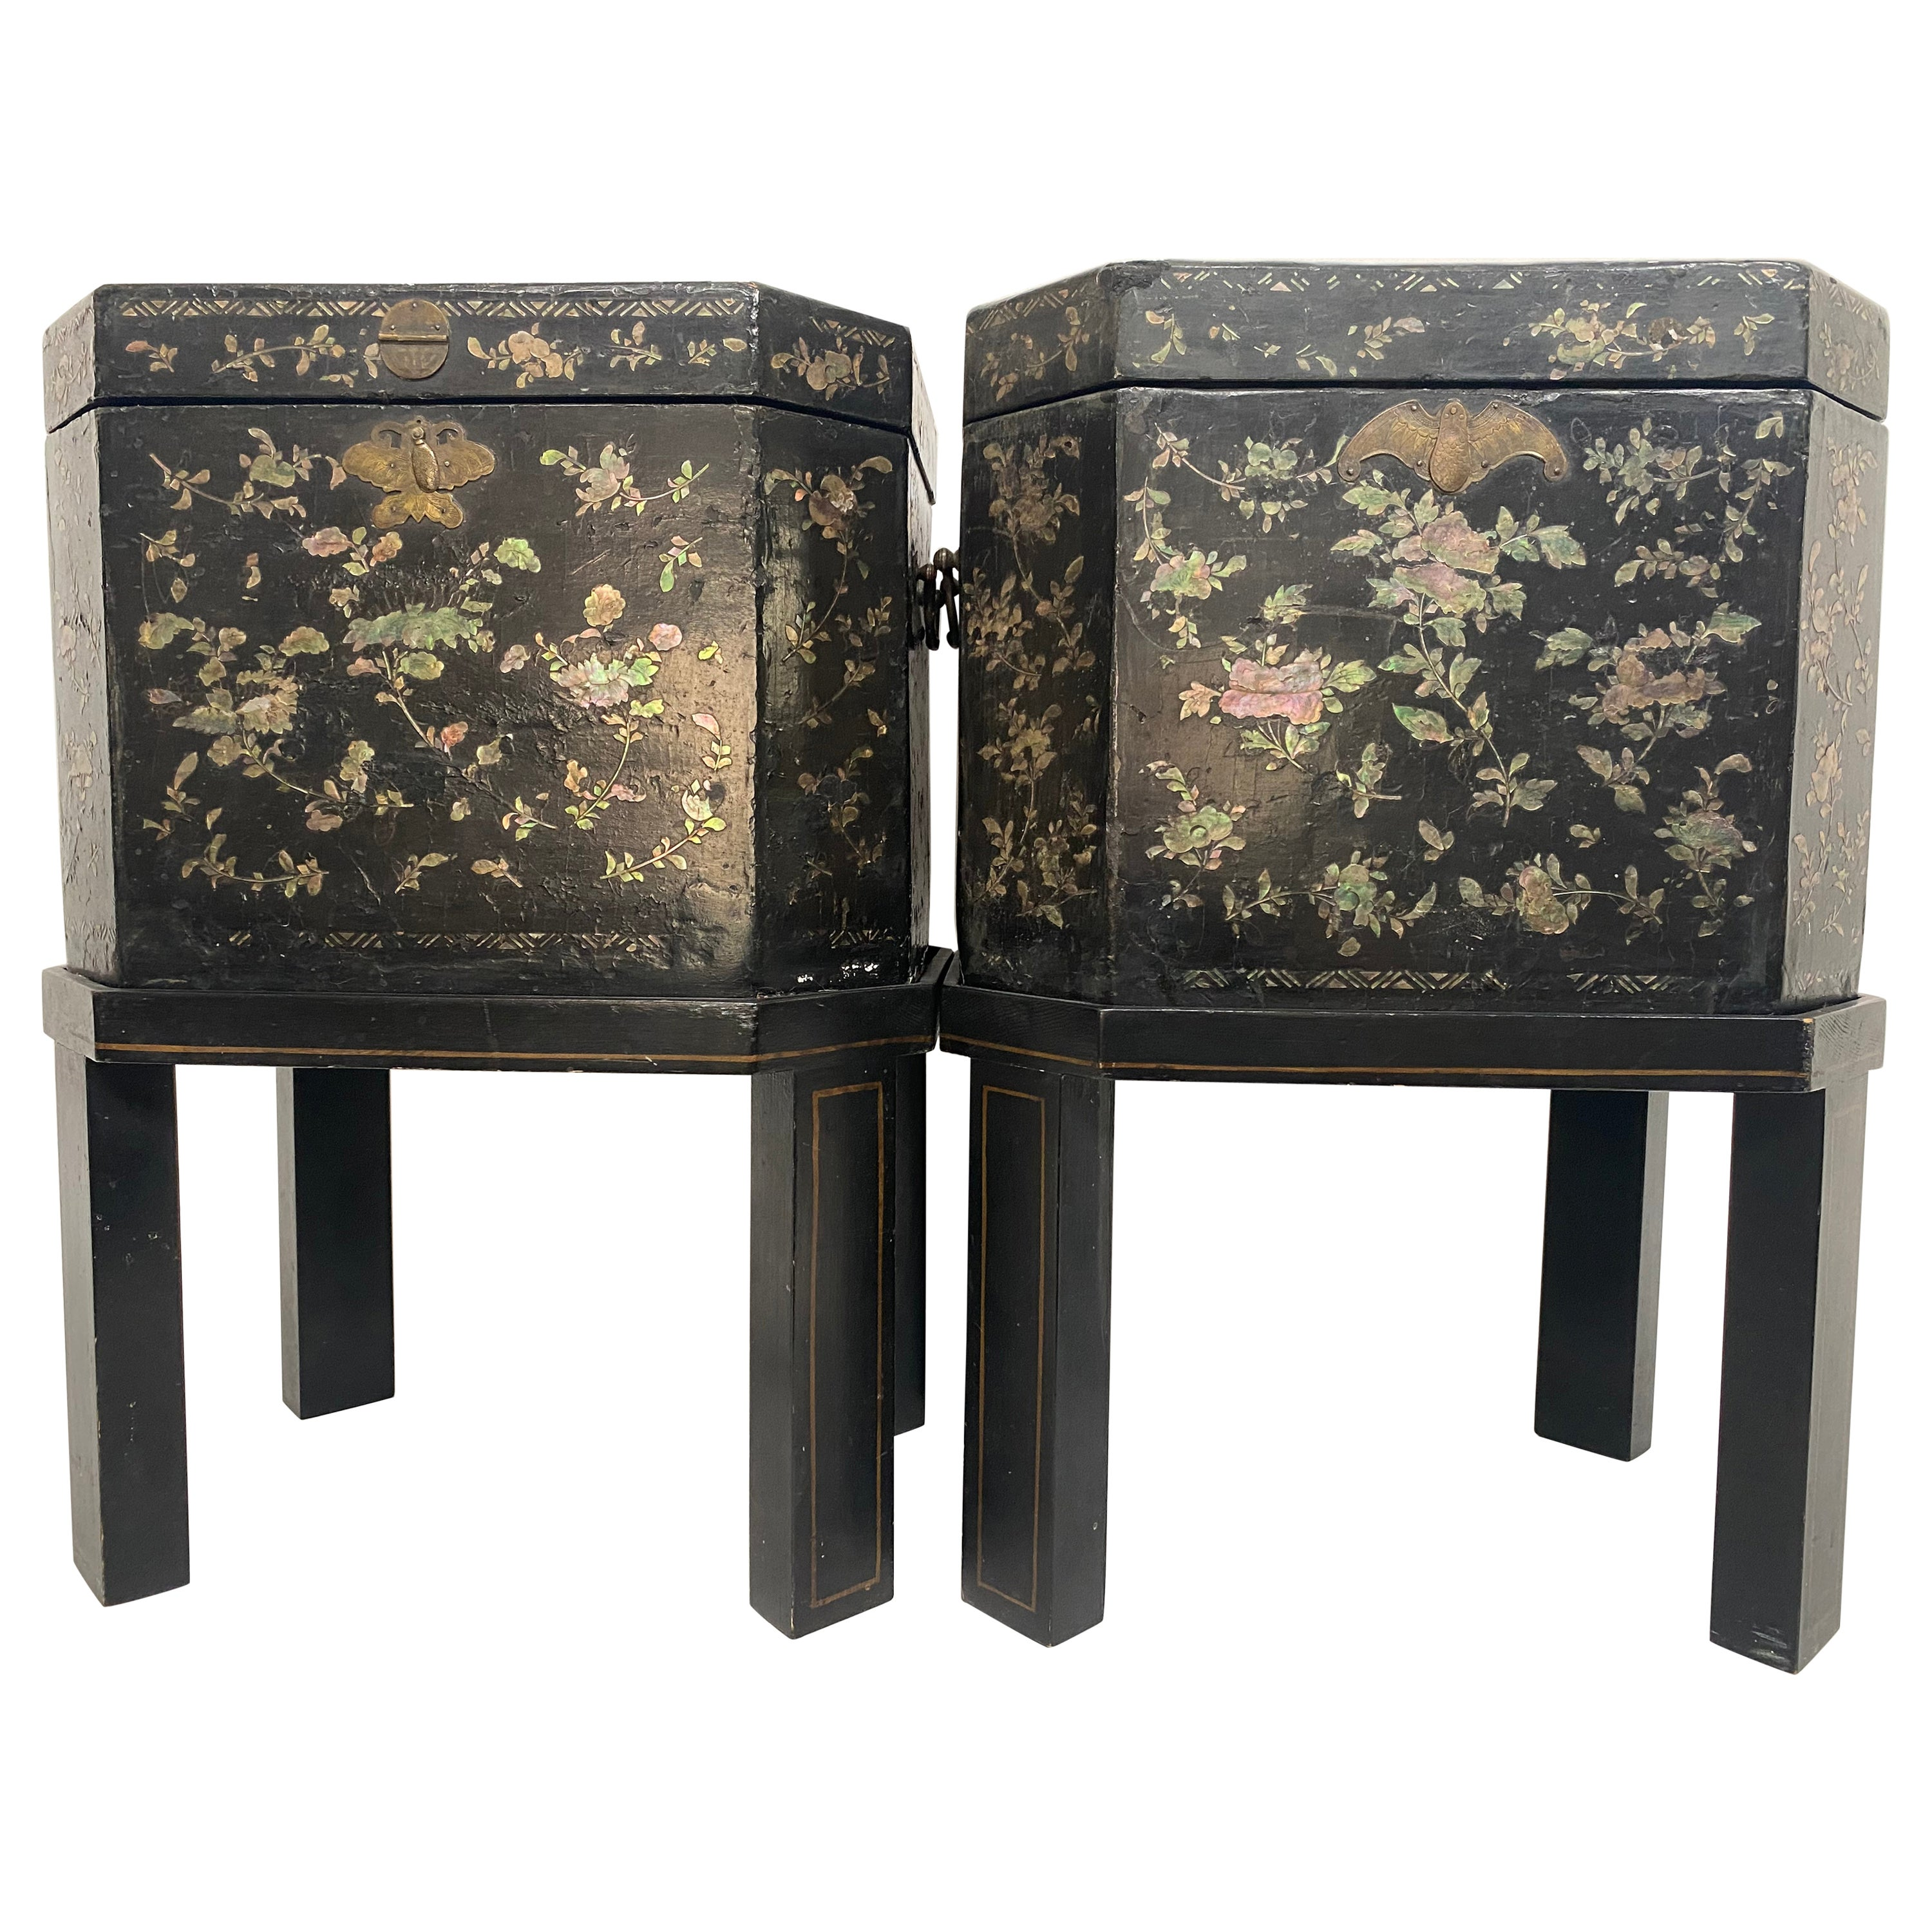 19th Century Unique Pair of Shell Inlaid Black Lacquer Big Chinese Tea Caddies